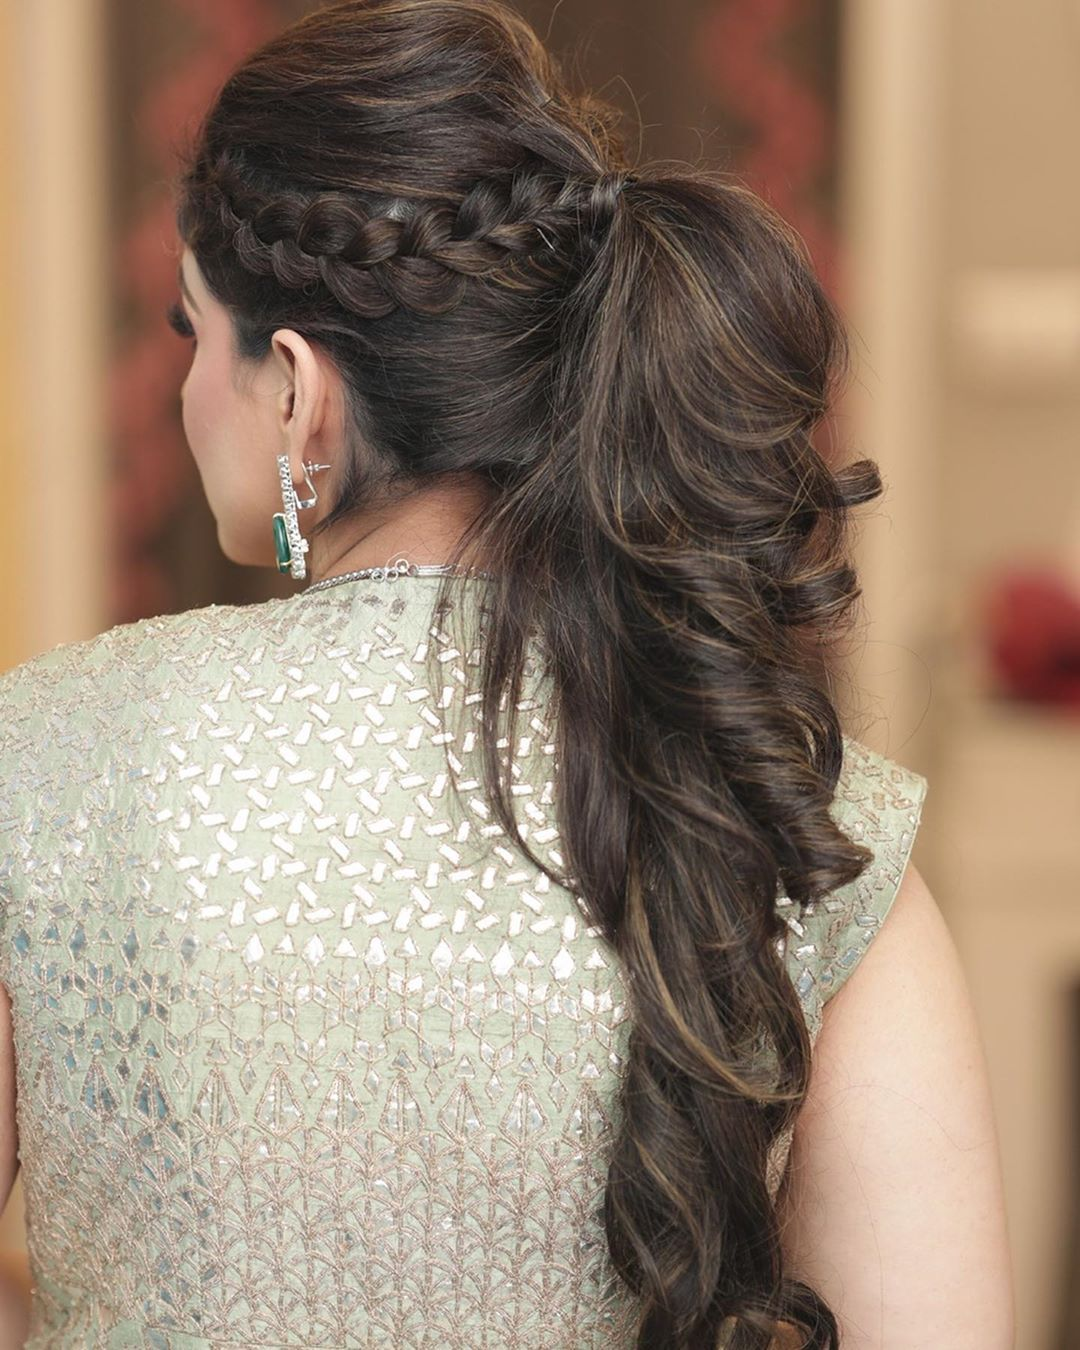 Trending: Puffy Ponytail Hairstyles That Indian Brides Are Getting Obsessed  With! in 2020 | Bridal ponytail, Ponytail hairstyles, Long hair wedding  styles